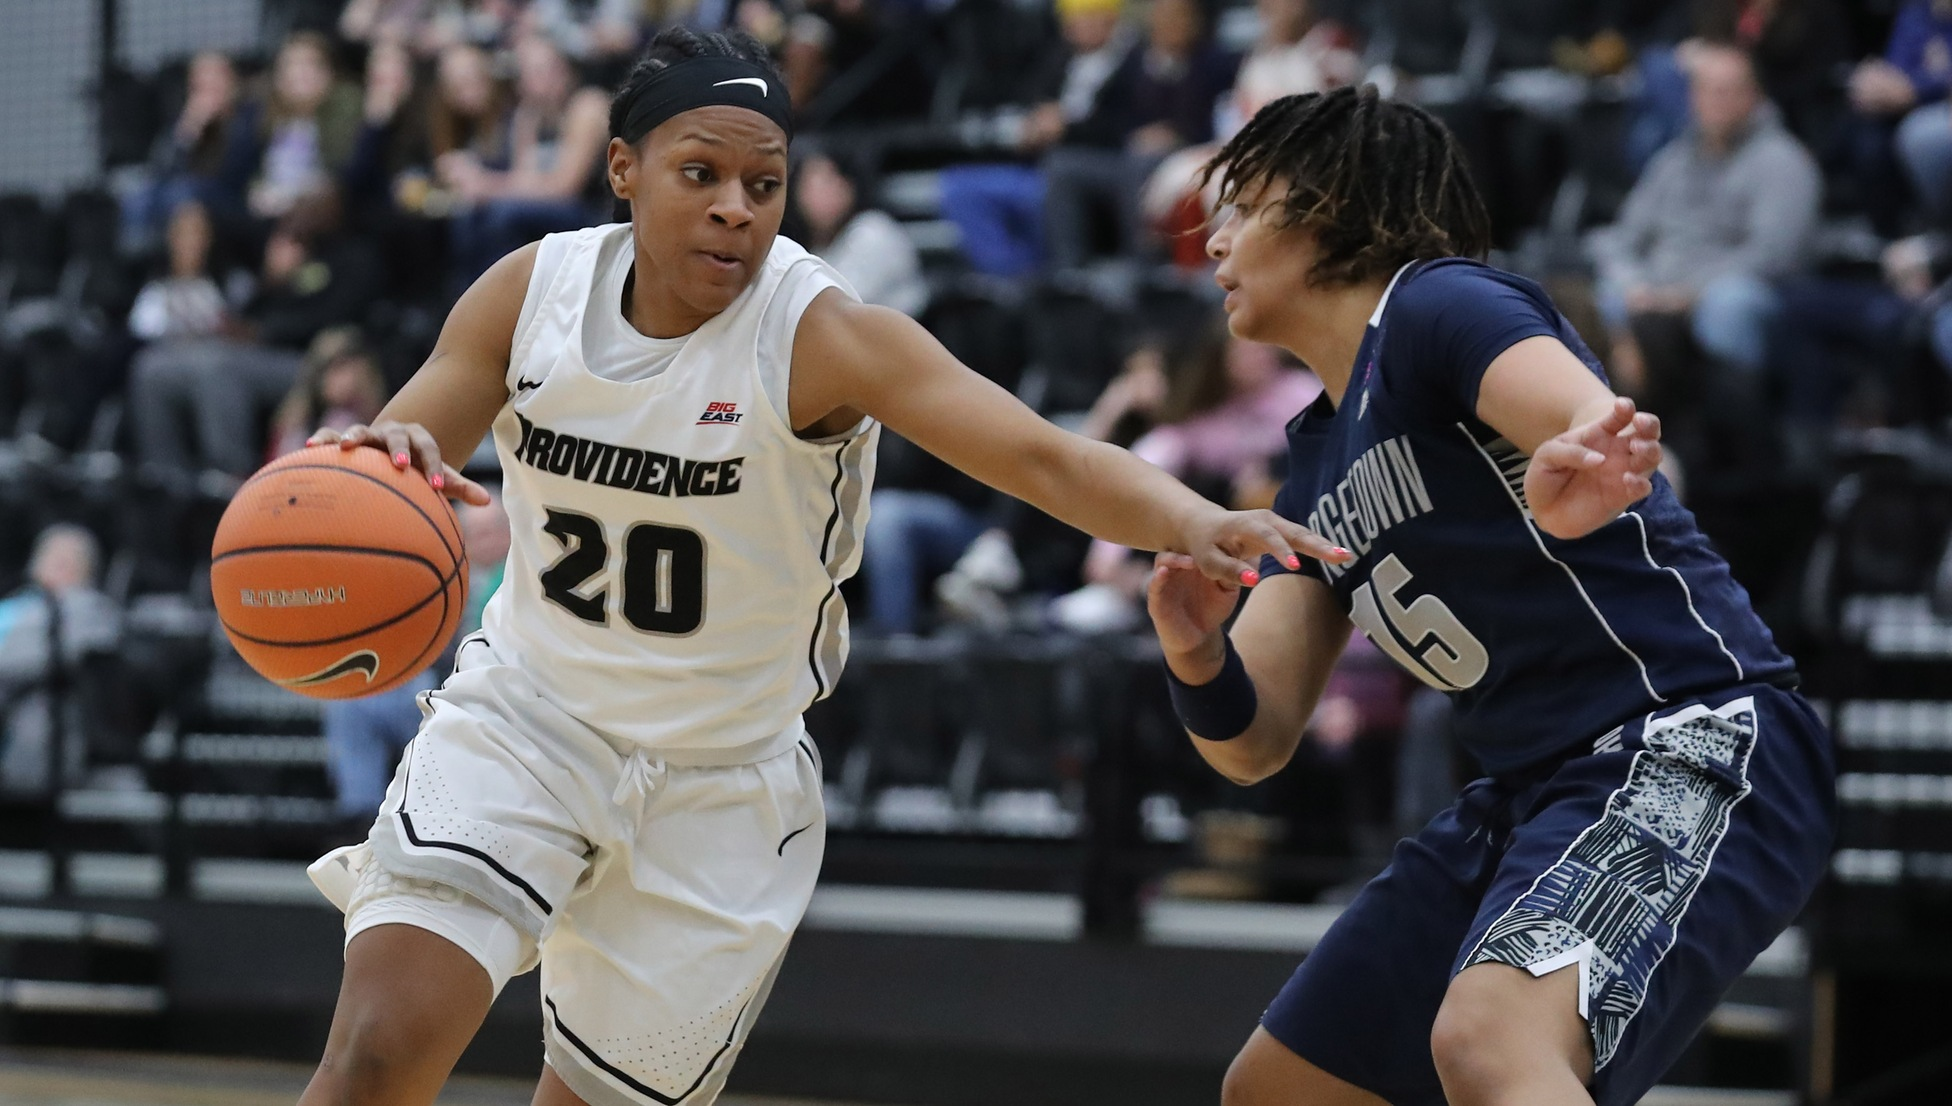 Ny'Dajah Jackson (Photo contribution from Providence College)